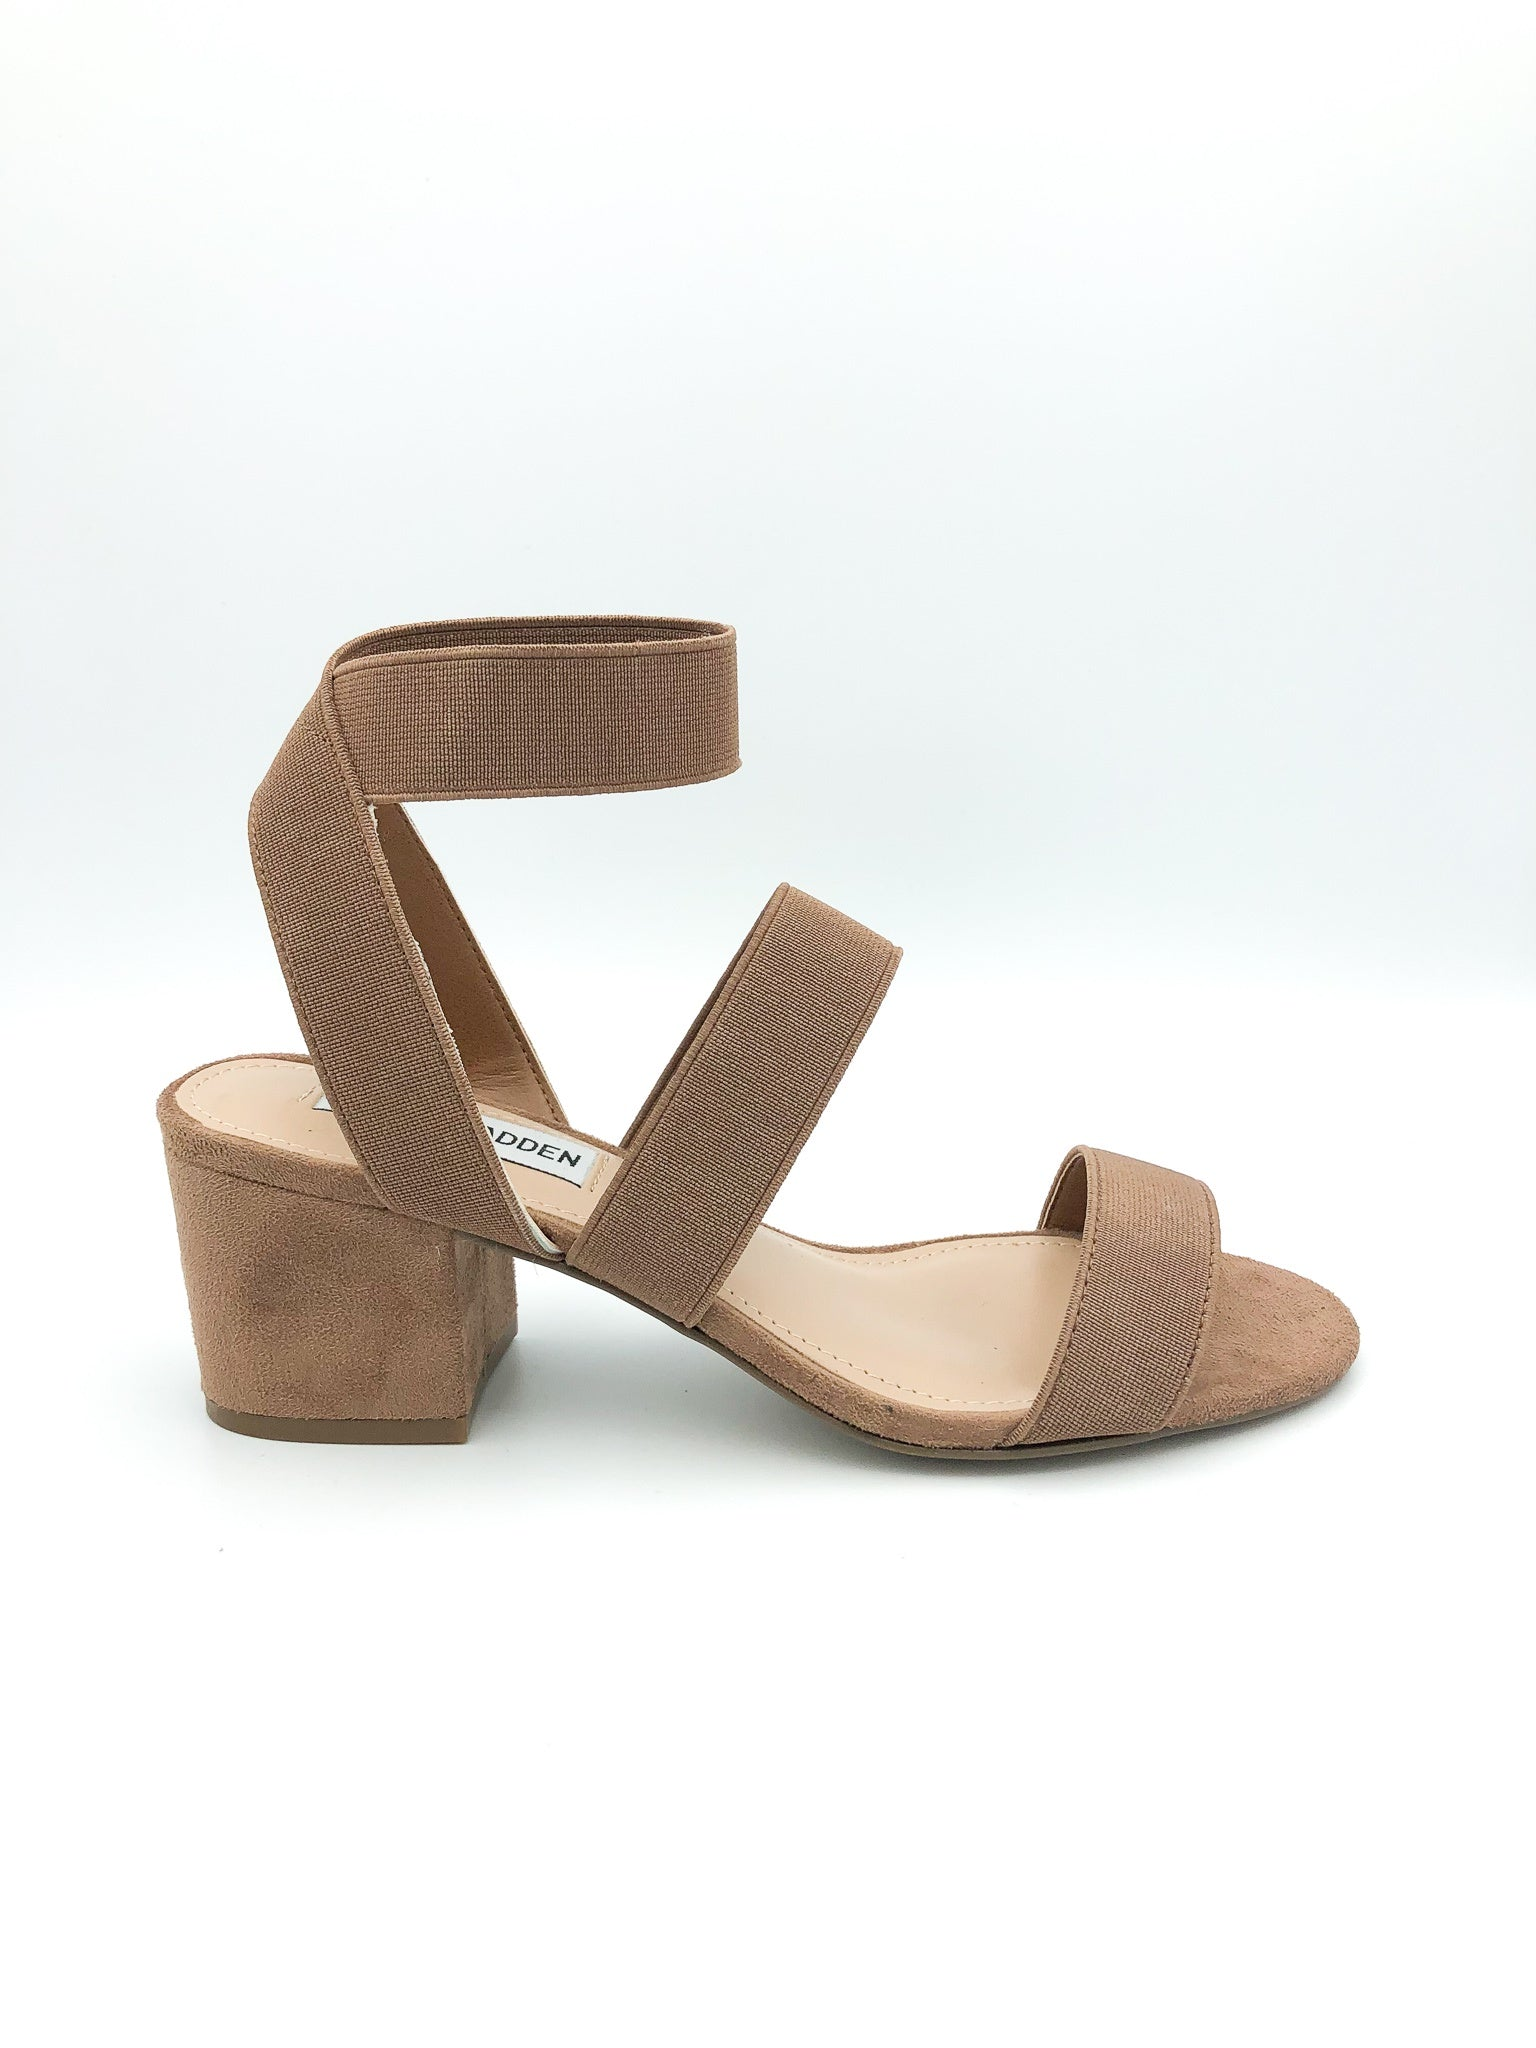 STEVE MADDEN- ISOLATE IN TAN